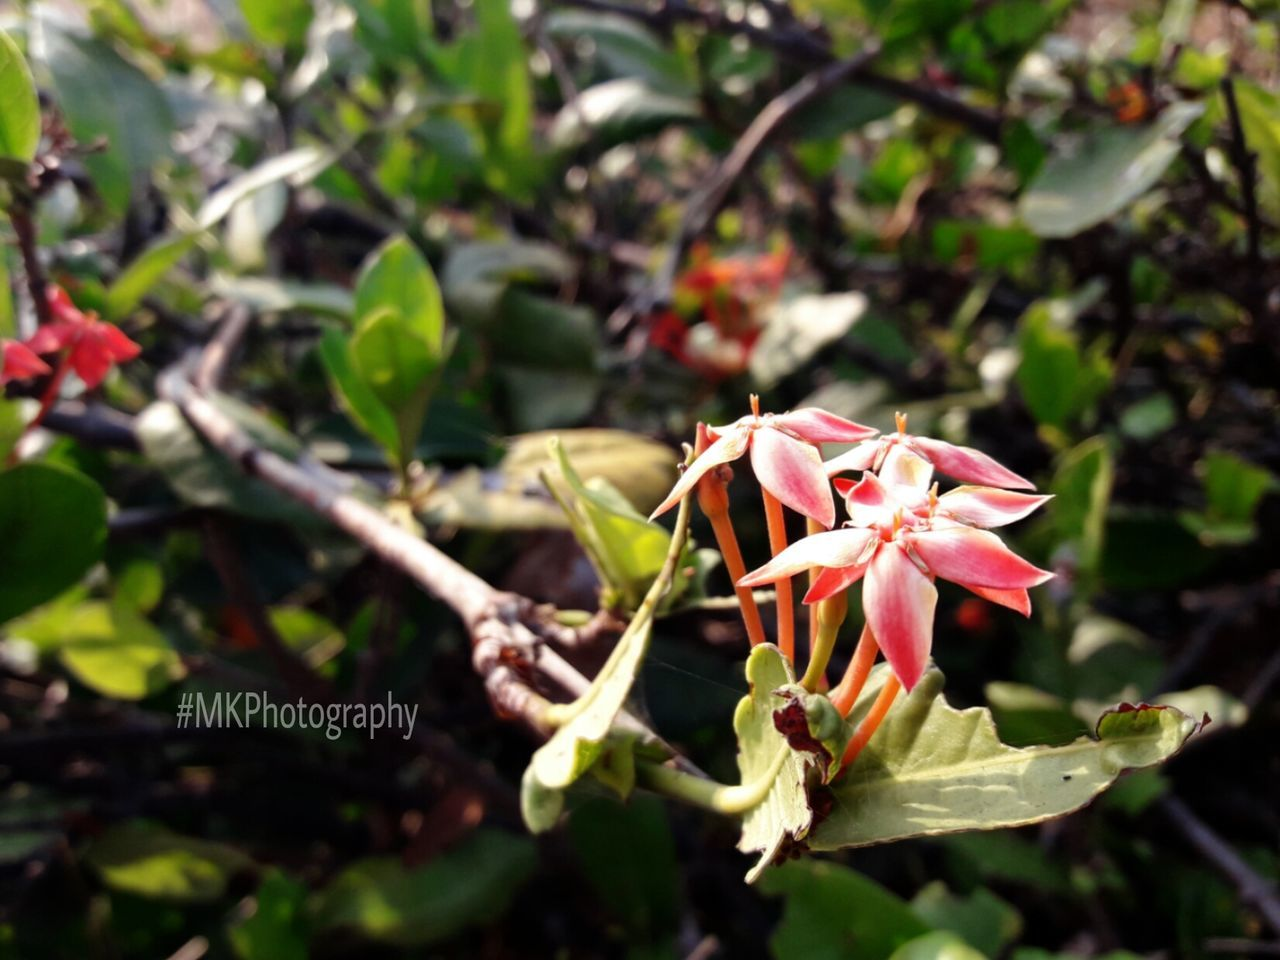 growth, nature, flower, fragility, petal, beauty in nature, plant, outdoors, day, freshness, no people, flower head, leaf, close-up, blooming